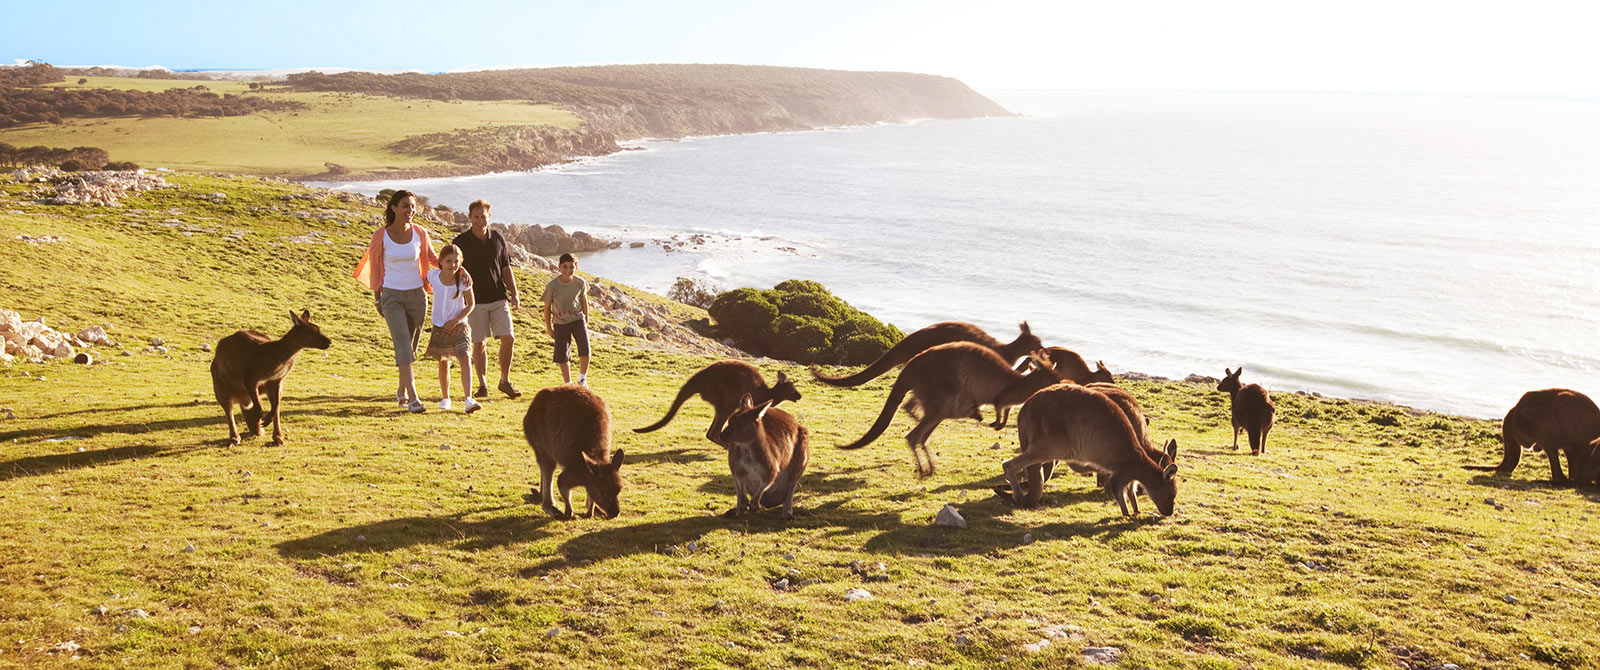 Family on Kangaroo Island Australia - Best Multigenerational Family Vacations